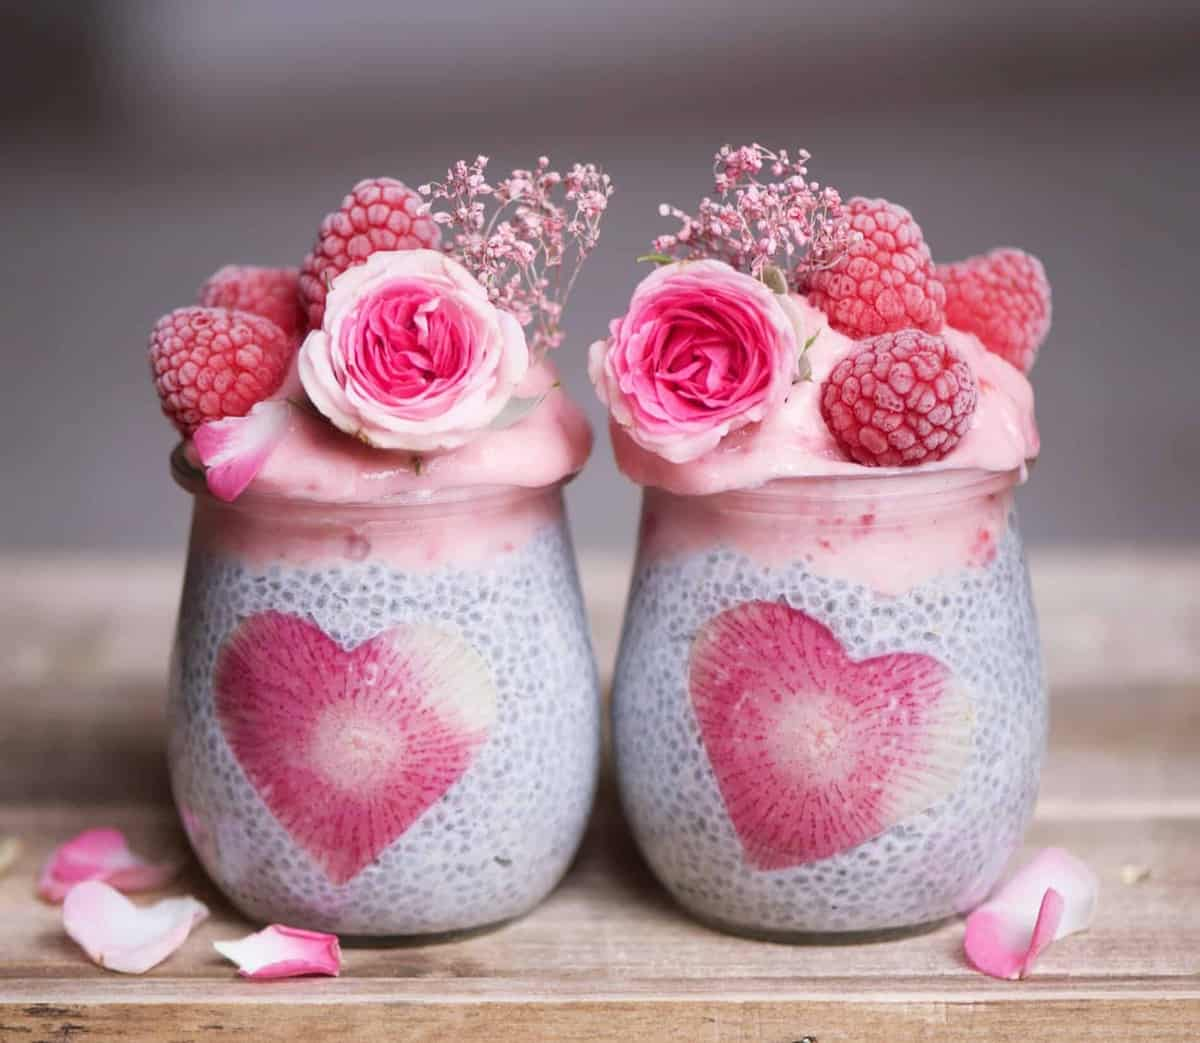 Strawberry and banana smoothie layered chia pudding jars decorated with frozen raspberries and edible roses. Delicious and nutritious vegan breakfast dish